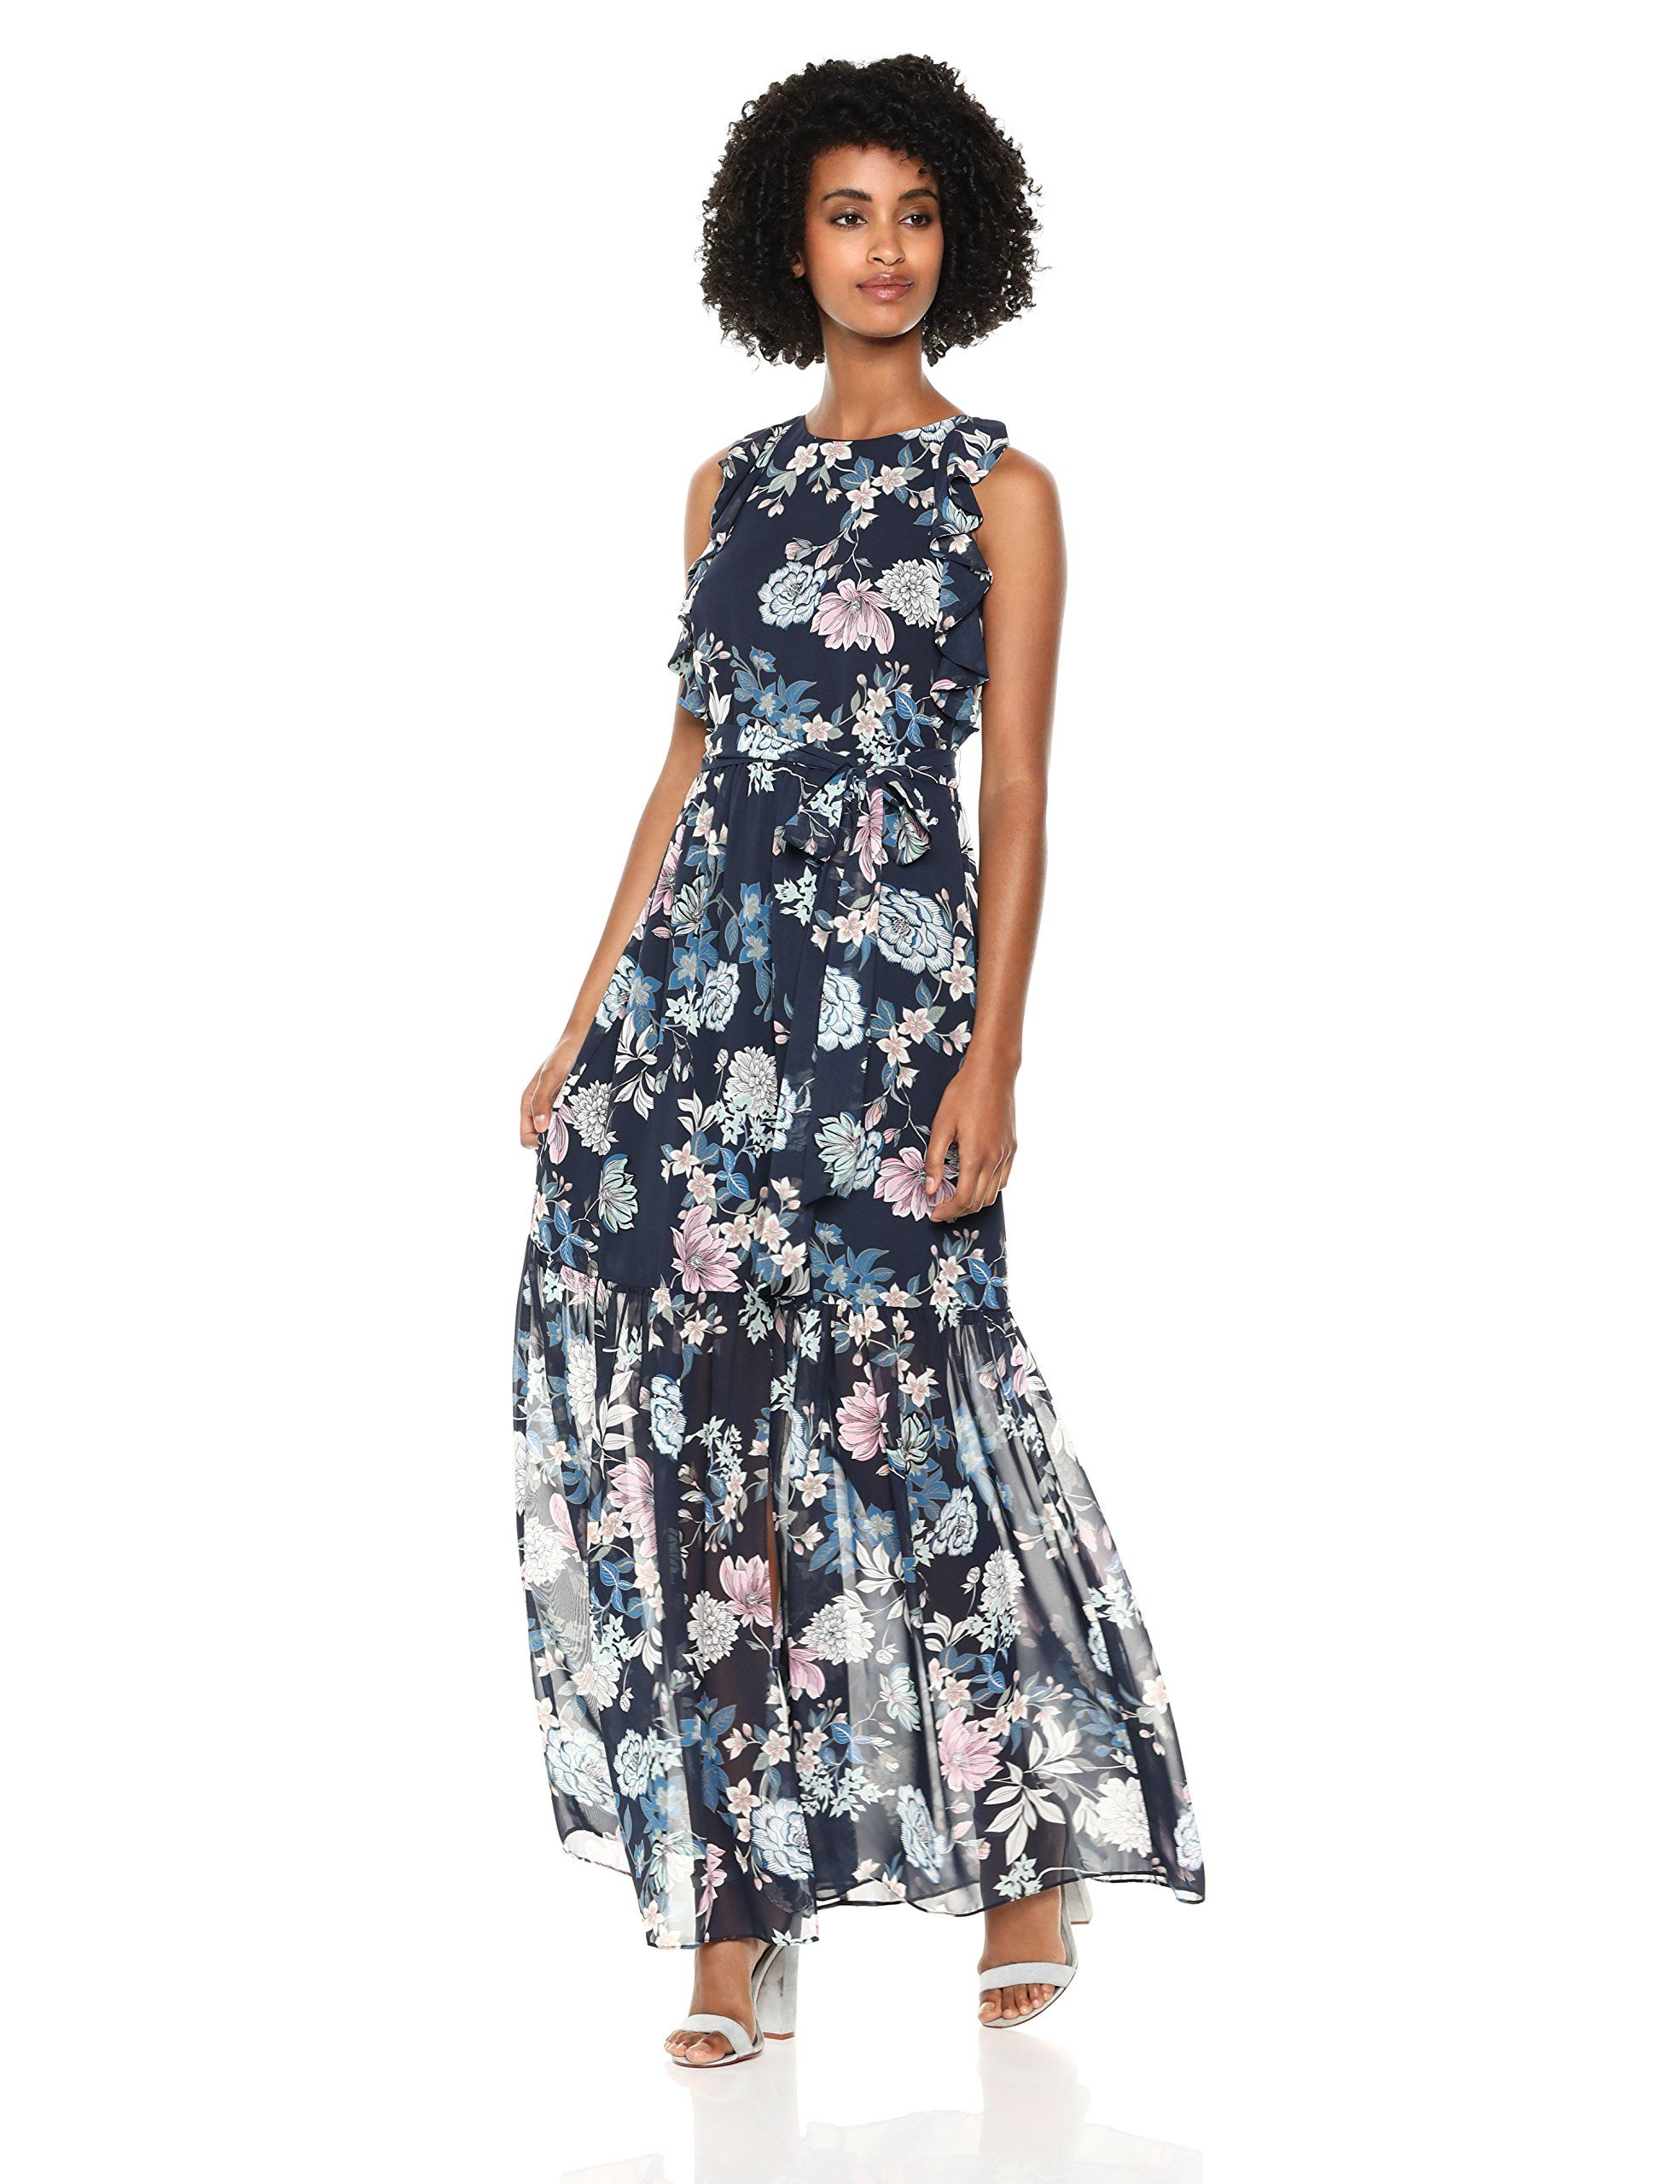 Vince Camuto Womens Floral Chiffon Ruffle Maxi Navy 10 Want To Know More Click On The Image Note Amazon Affiliate L Floral Chiffon Chiffon Ruffle Fashion [ 2560 x 1969 Pixel ]